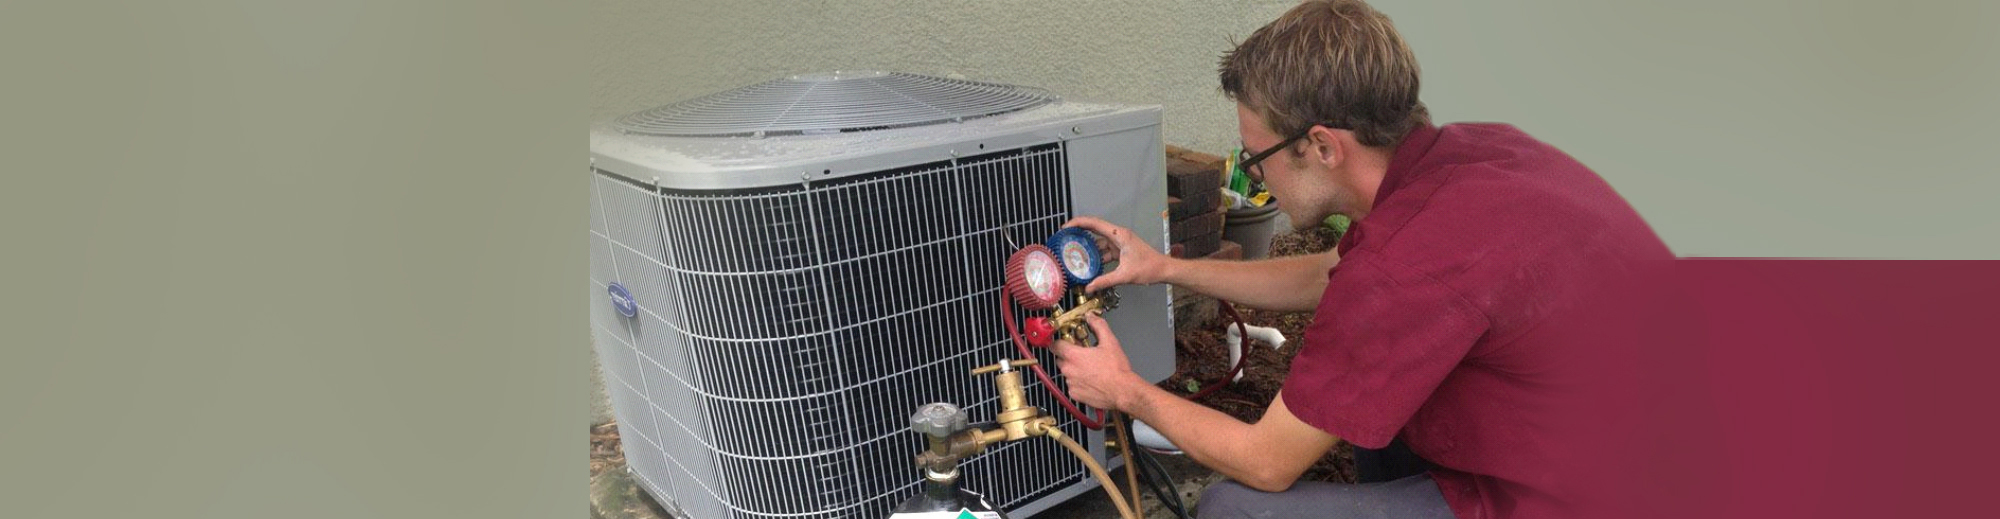 Kalos Services Air Conditioning Repair And Ac Replacement